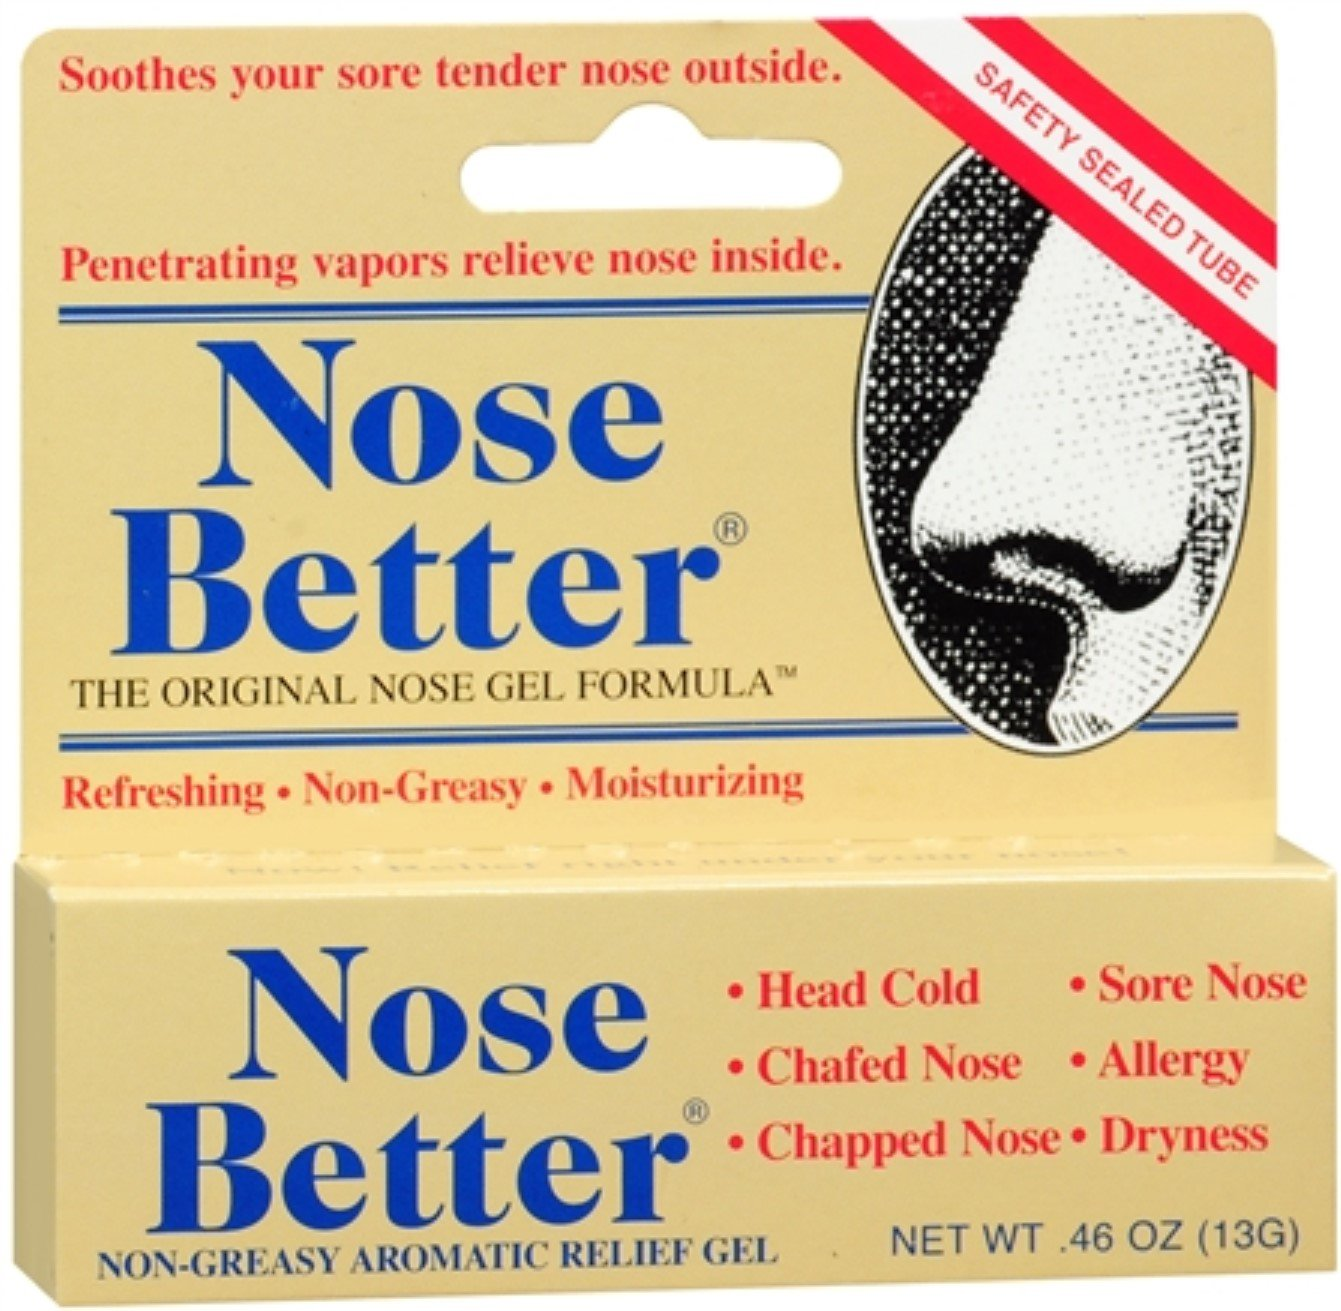 Nose Better Gel 0.46 oz (Pack of 6) by Nose Better